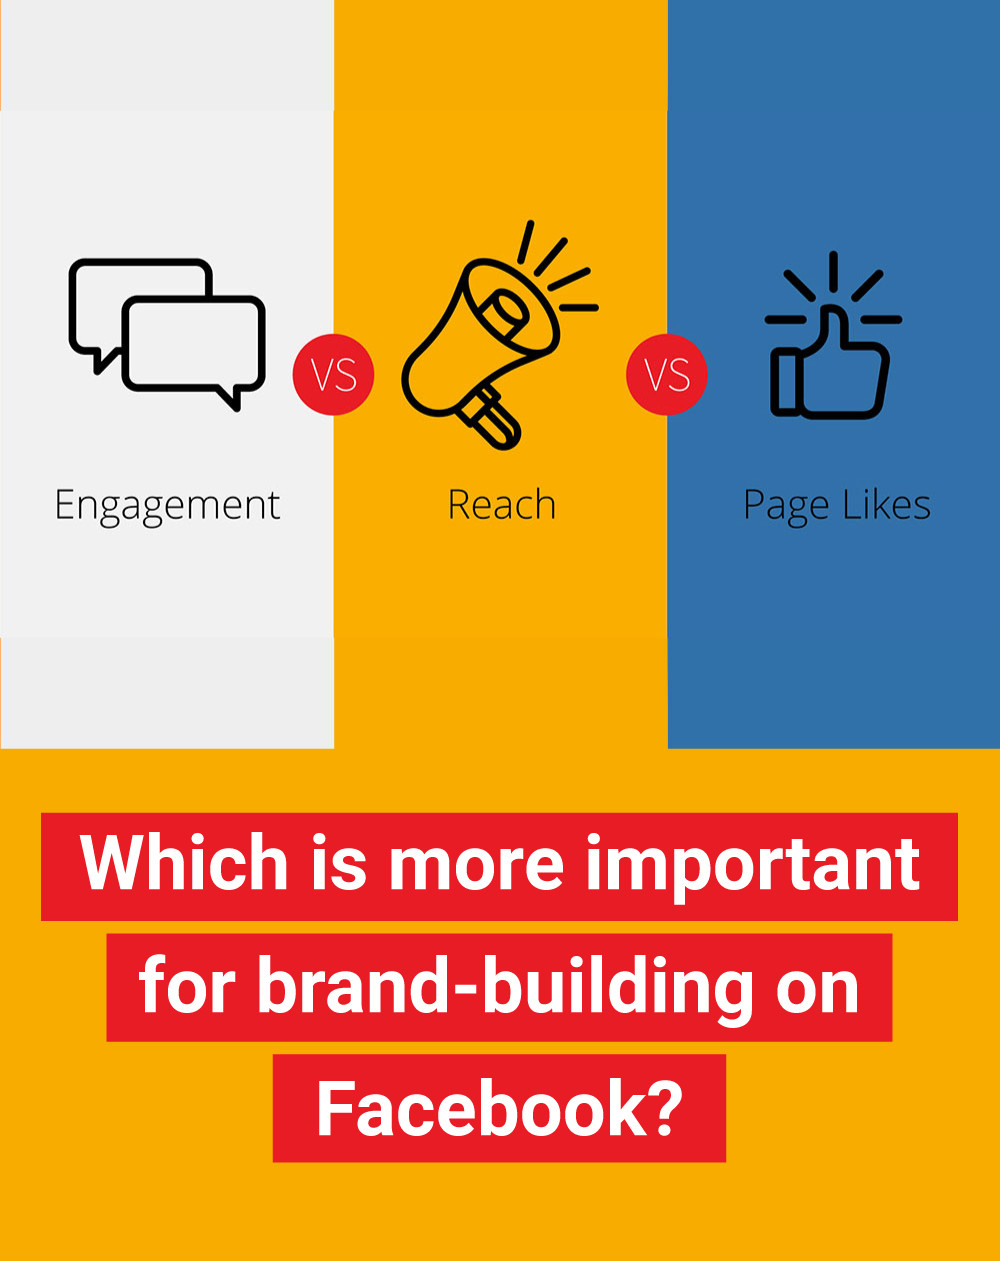 Engagement vs Reach vs Page Likes: Which is more important for brand-building on Facebook?